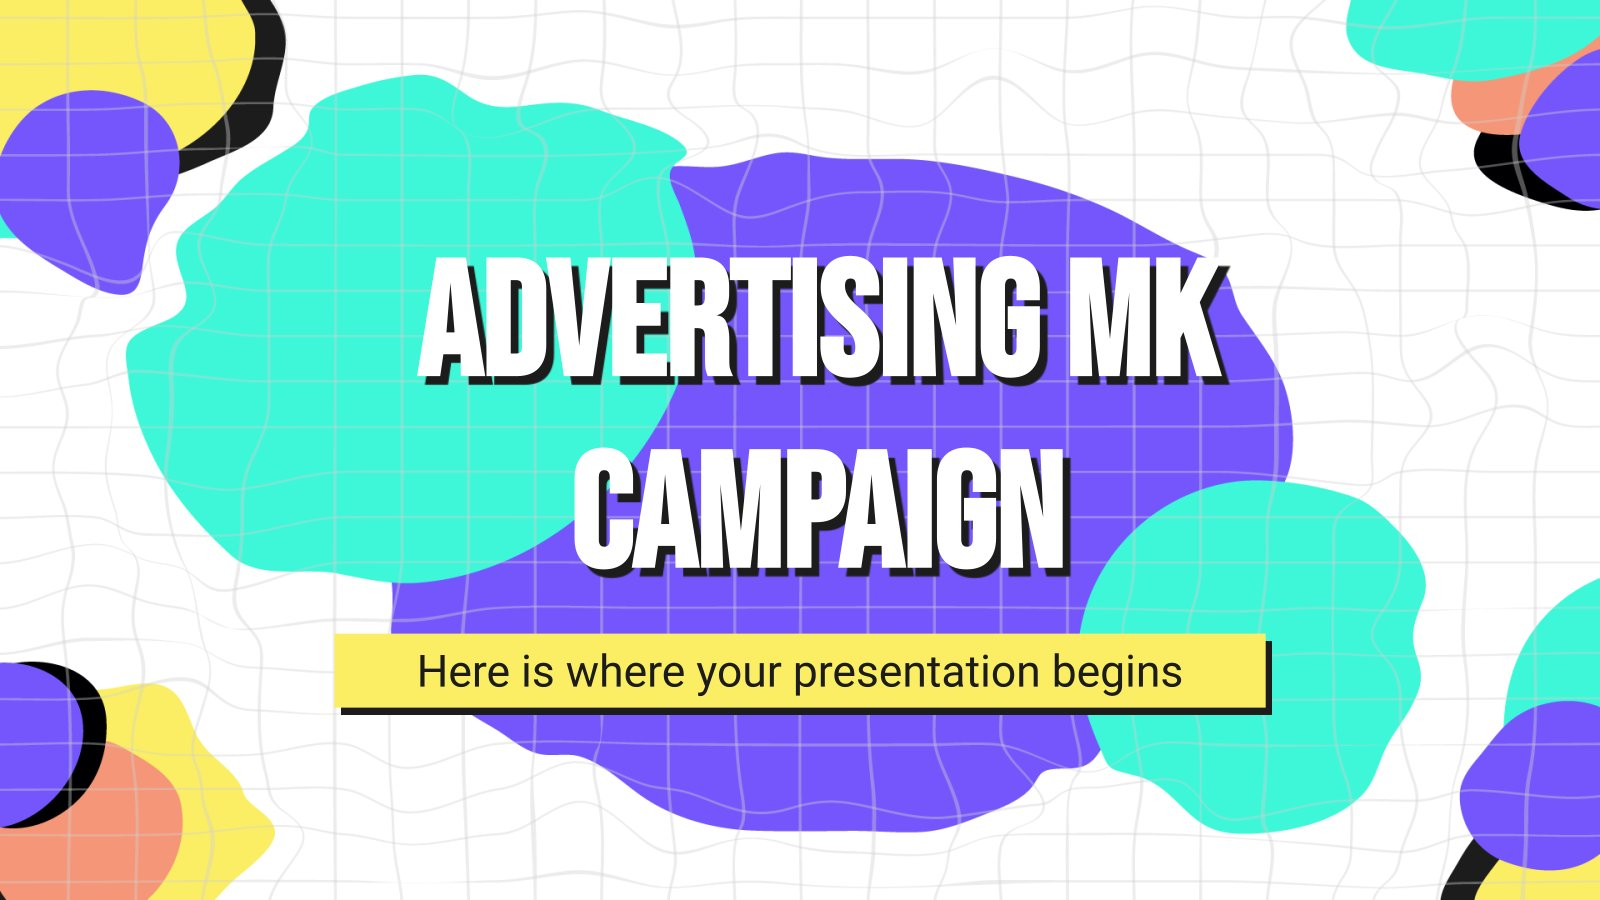 Advertising MK Campaign presentation template